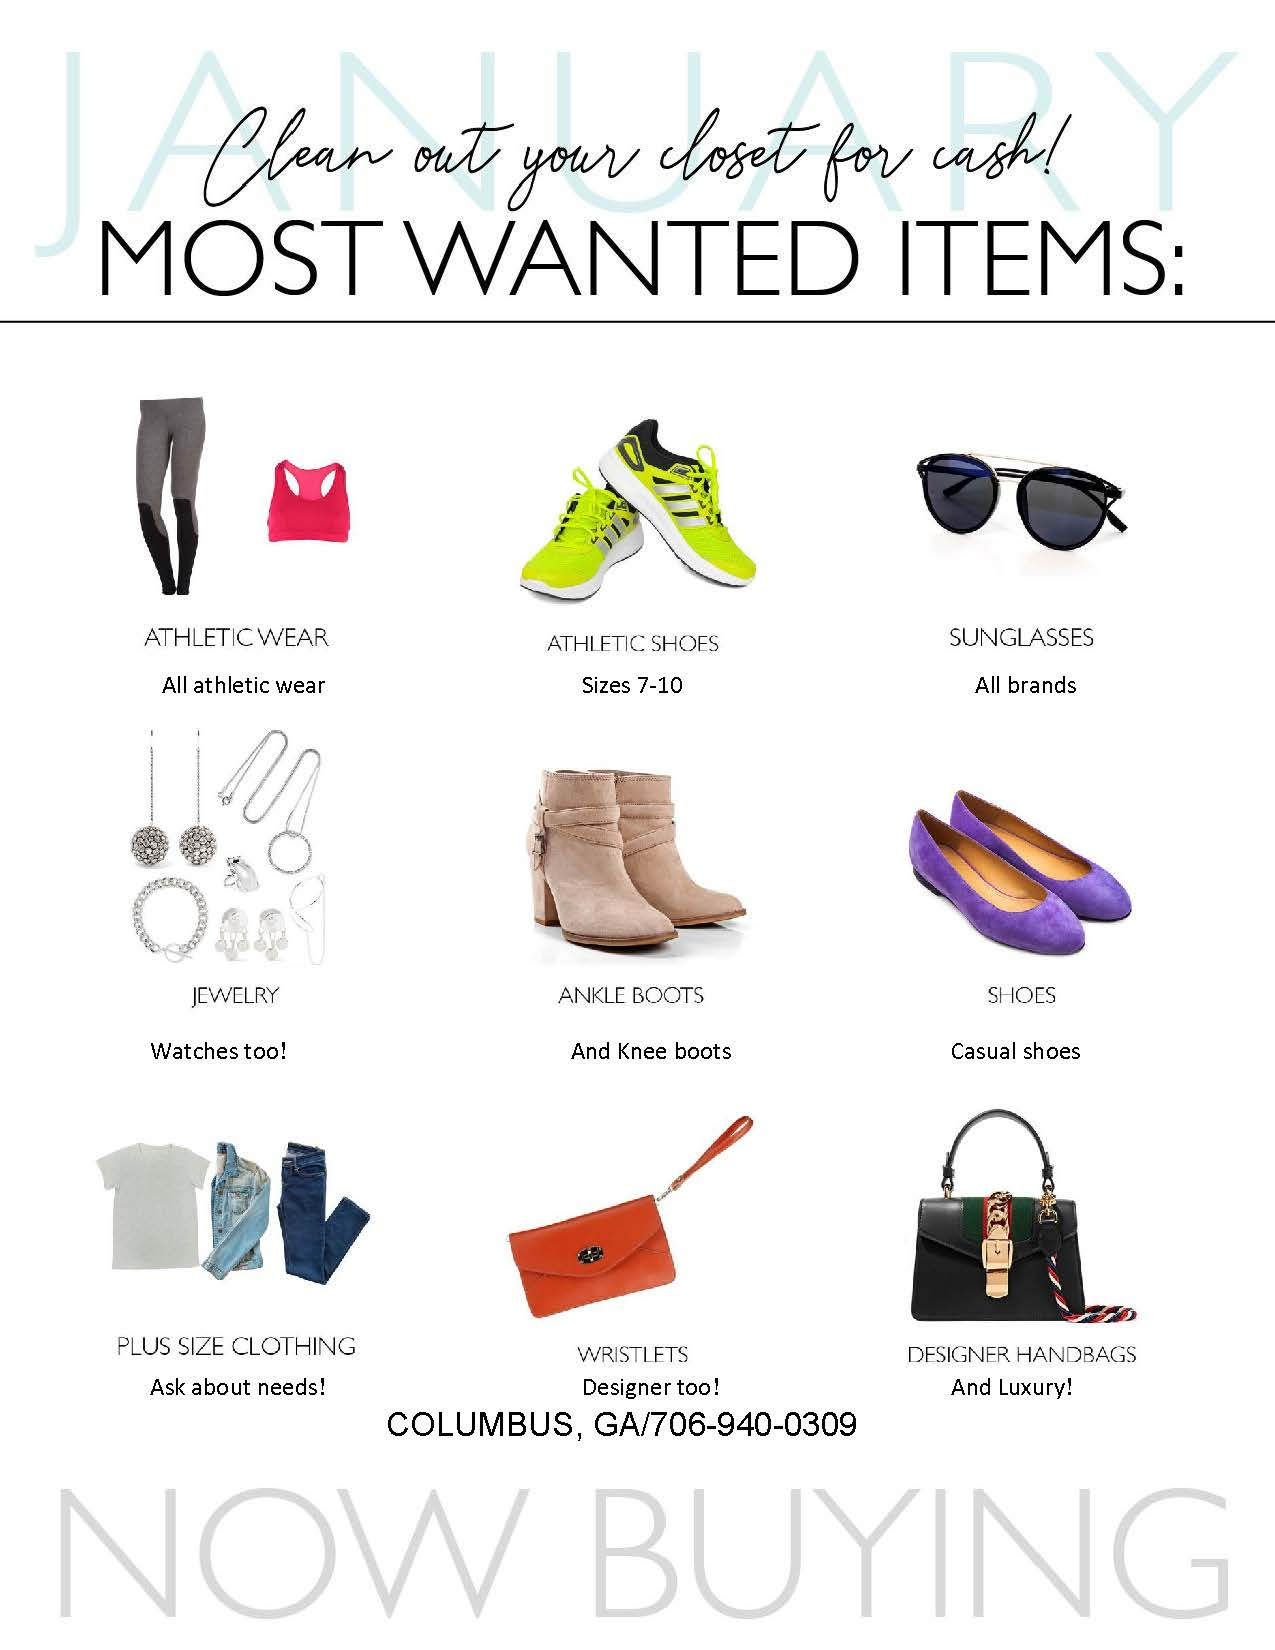 Clothes Mentor January Most Wanted Items